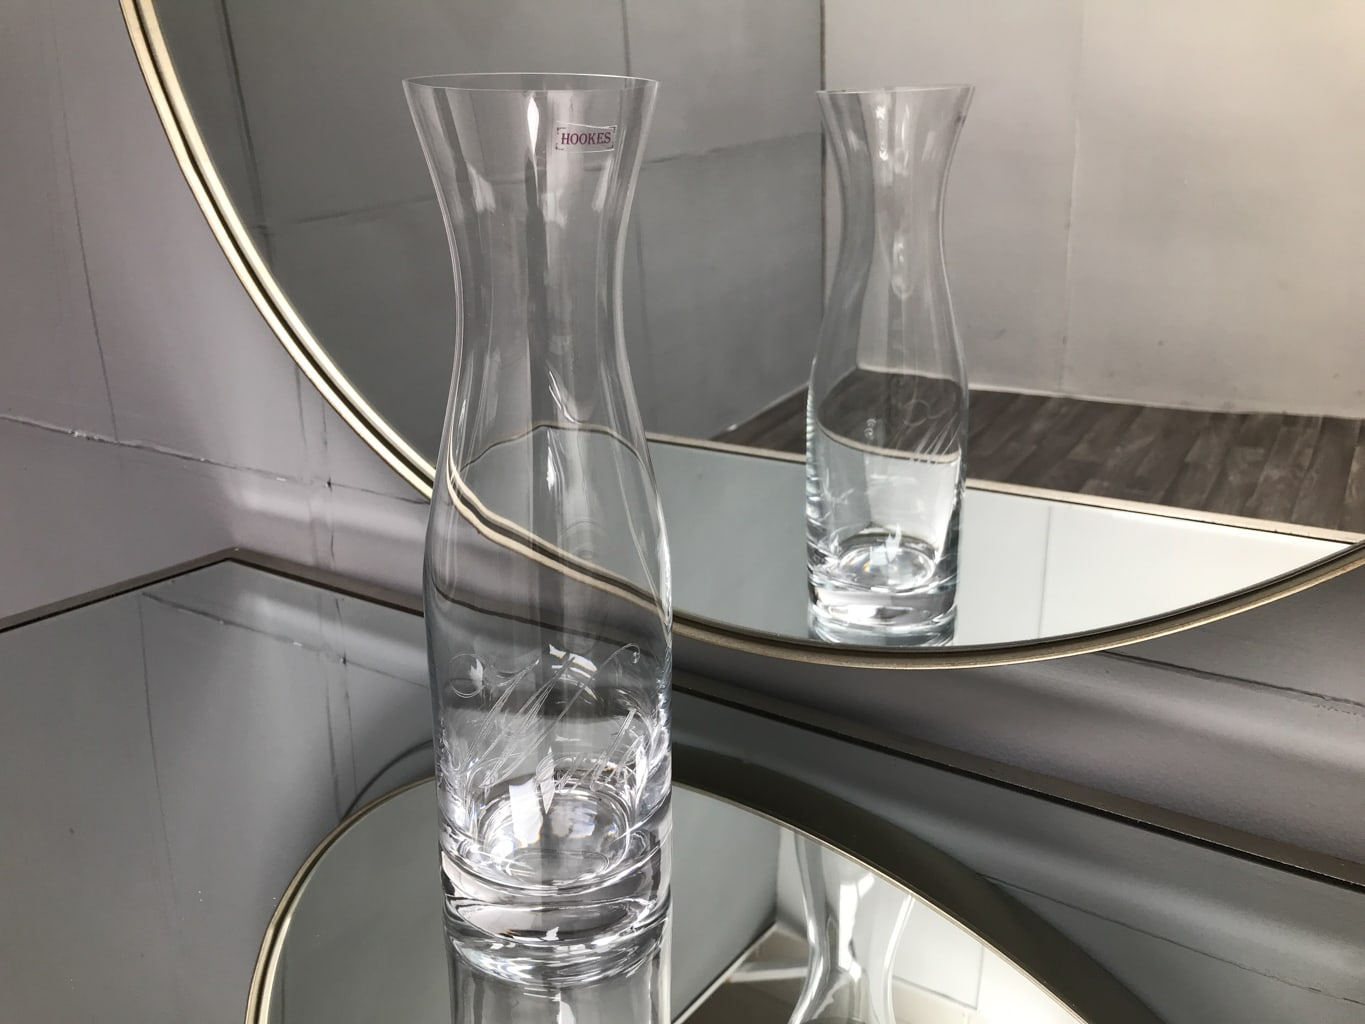 1 litre Water carafe, glass clear